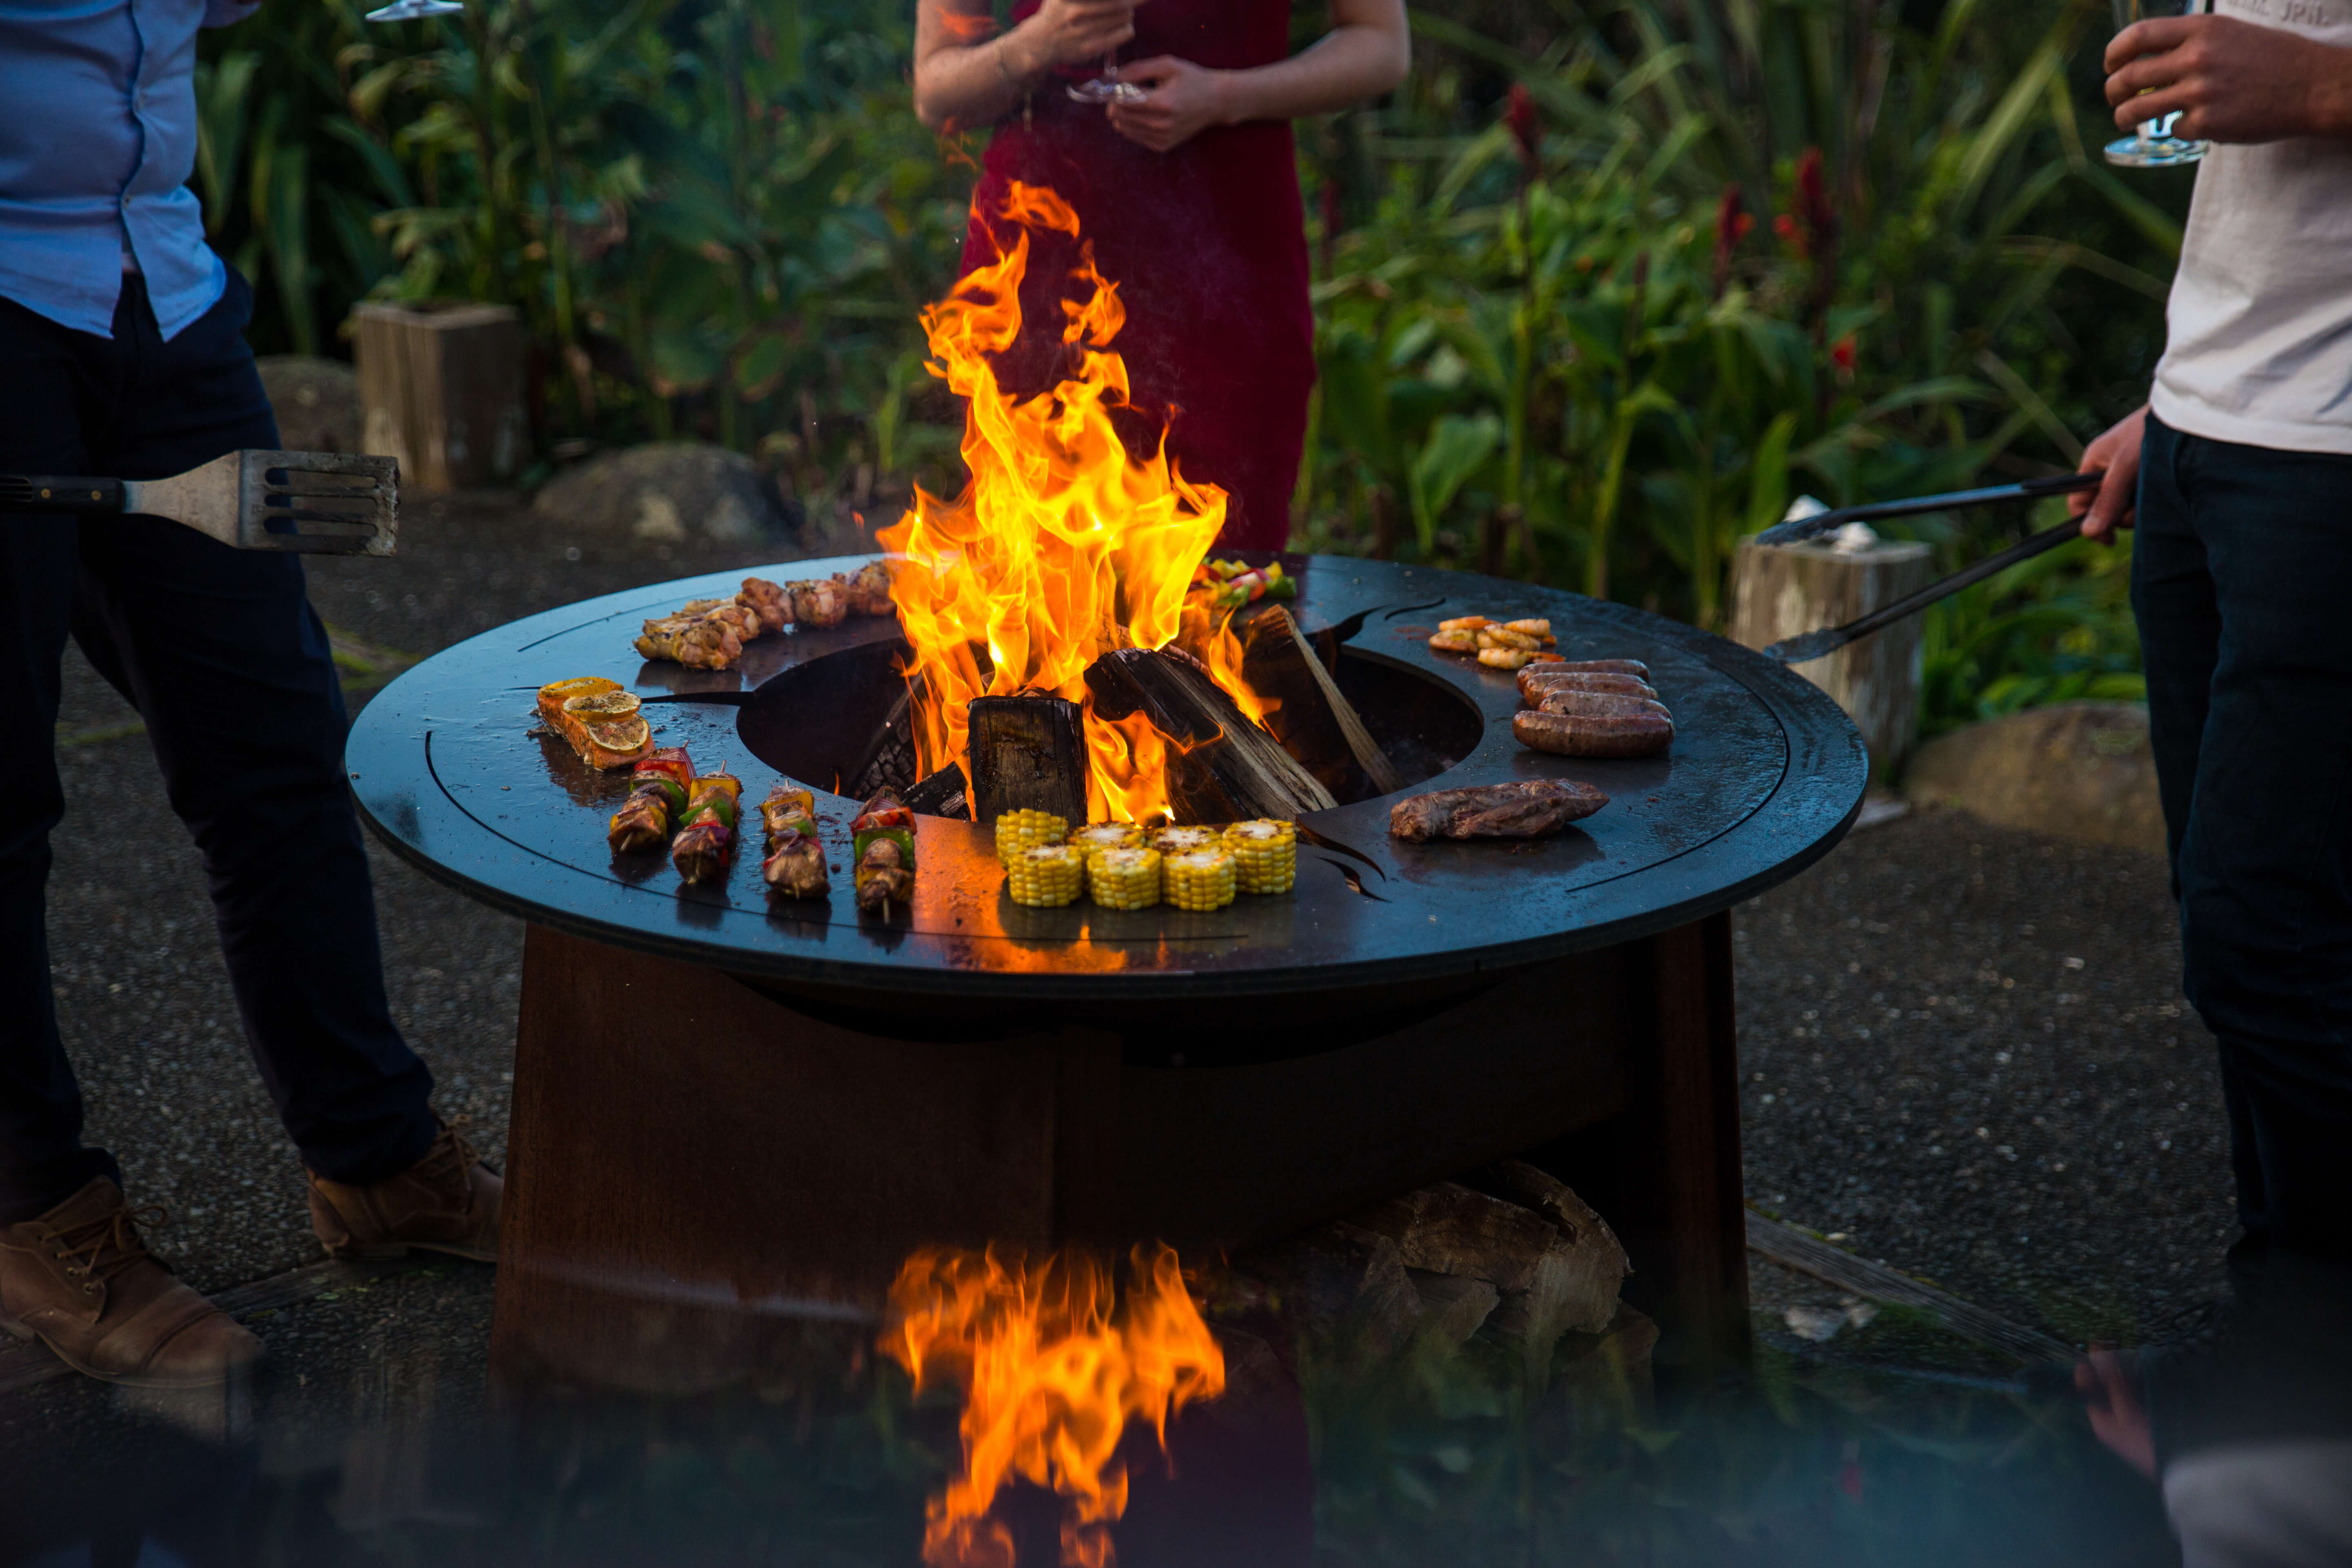 Cooking on an outdoor fire